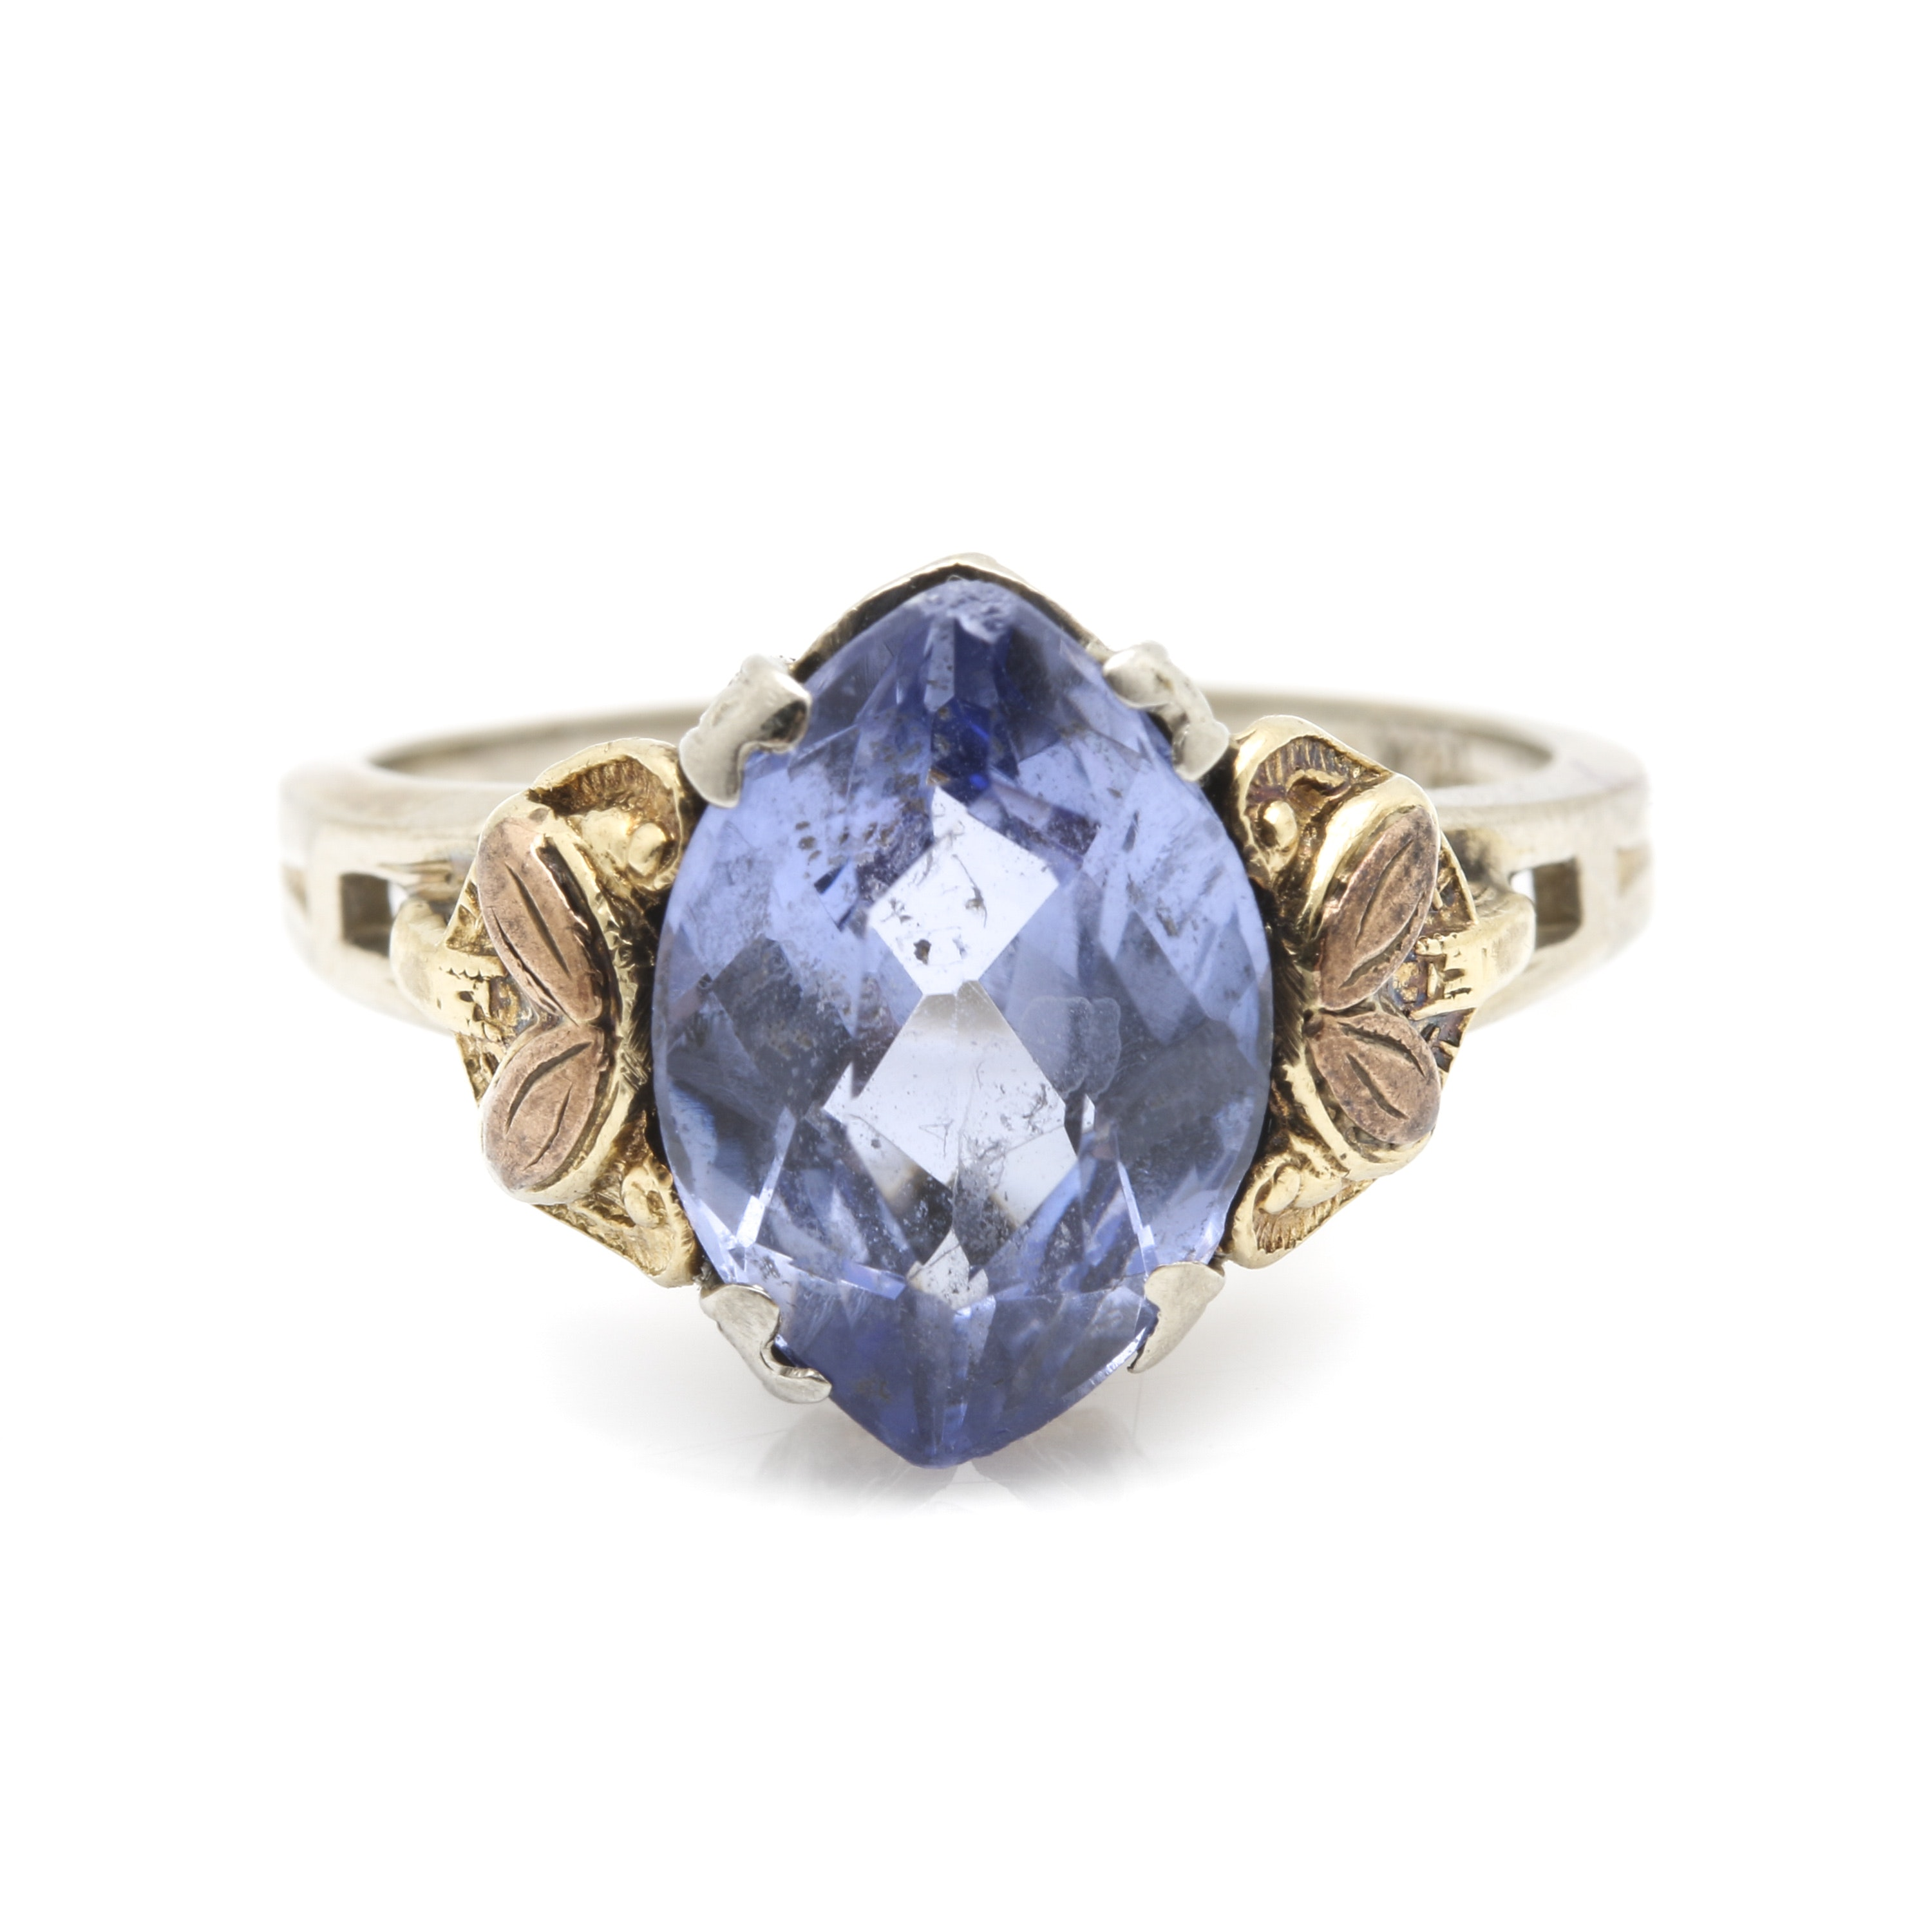 10K and 14K Mixed Metal Sapphire Ring